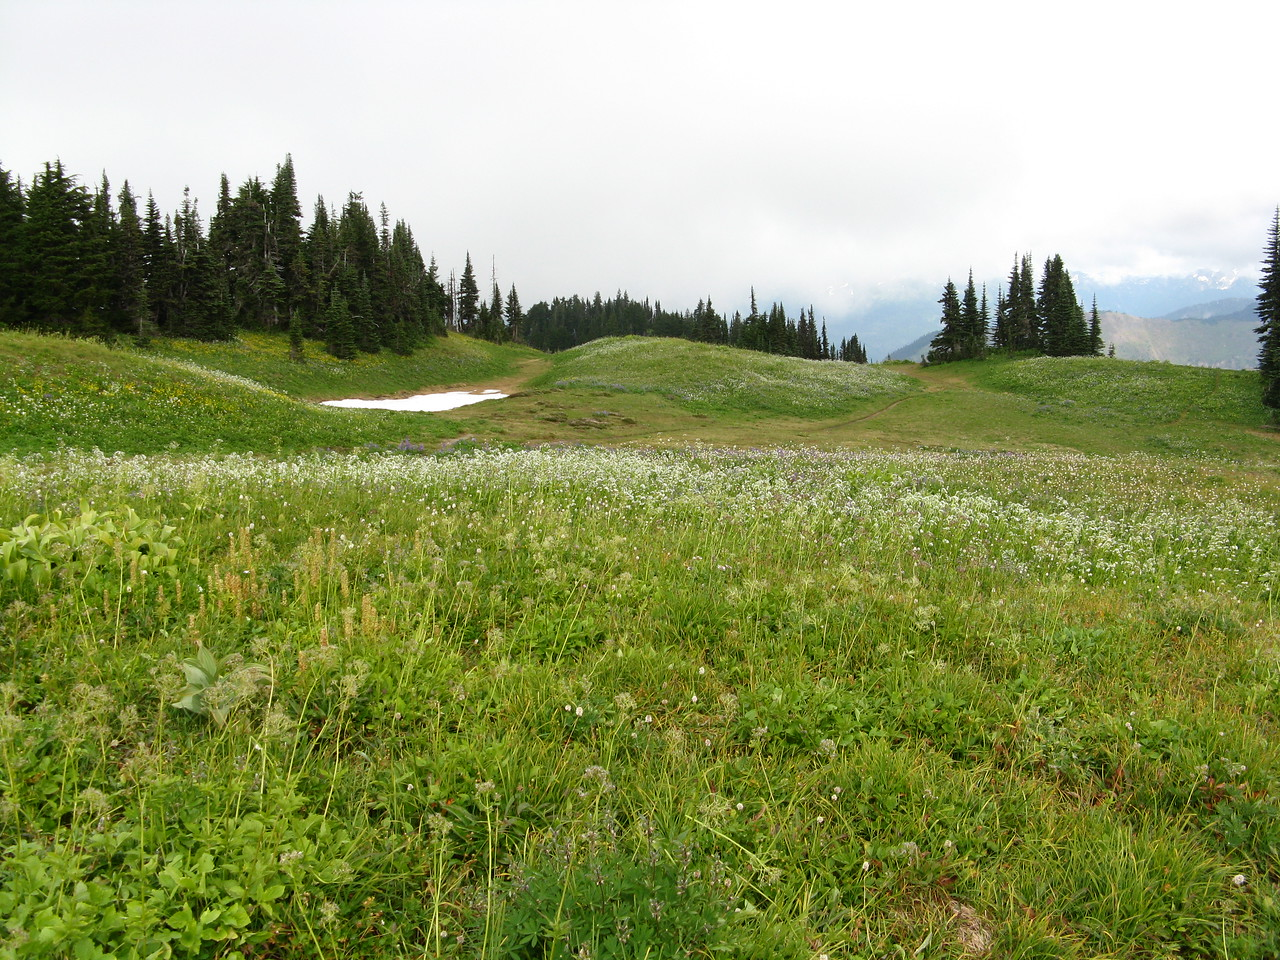 Another view of the meadow.